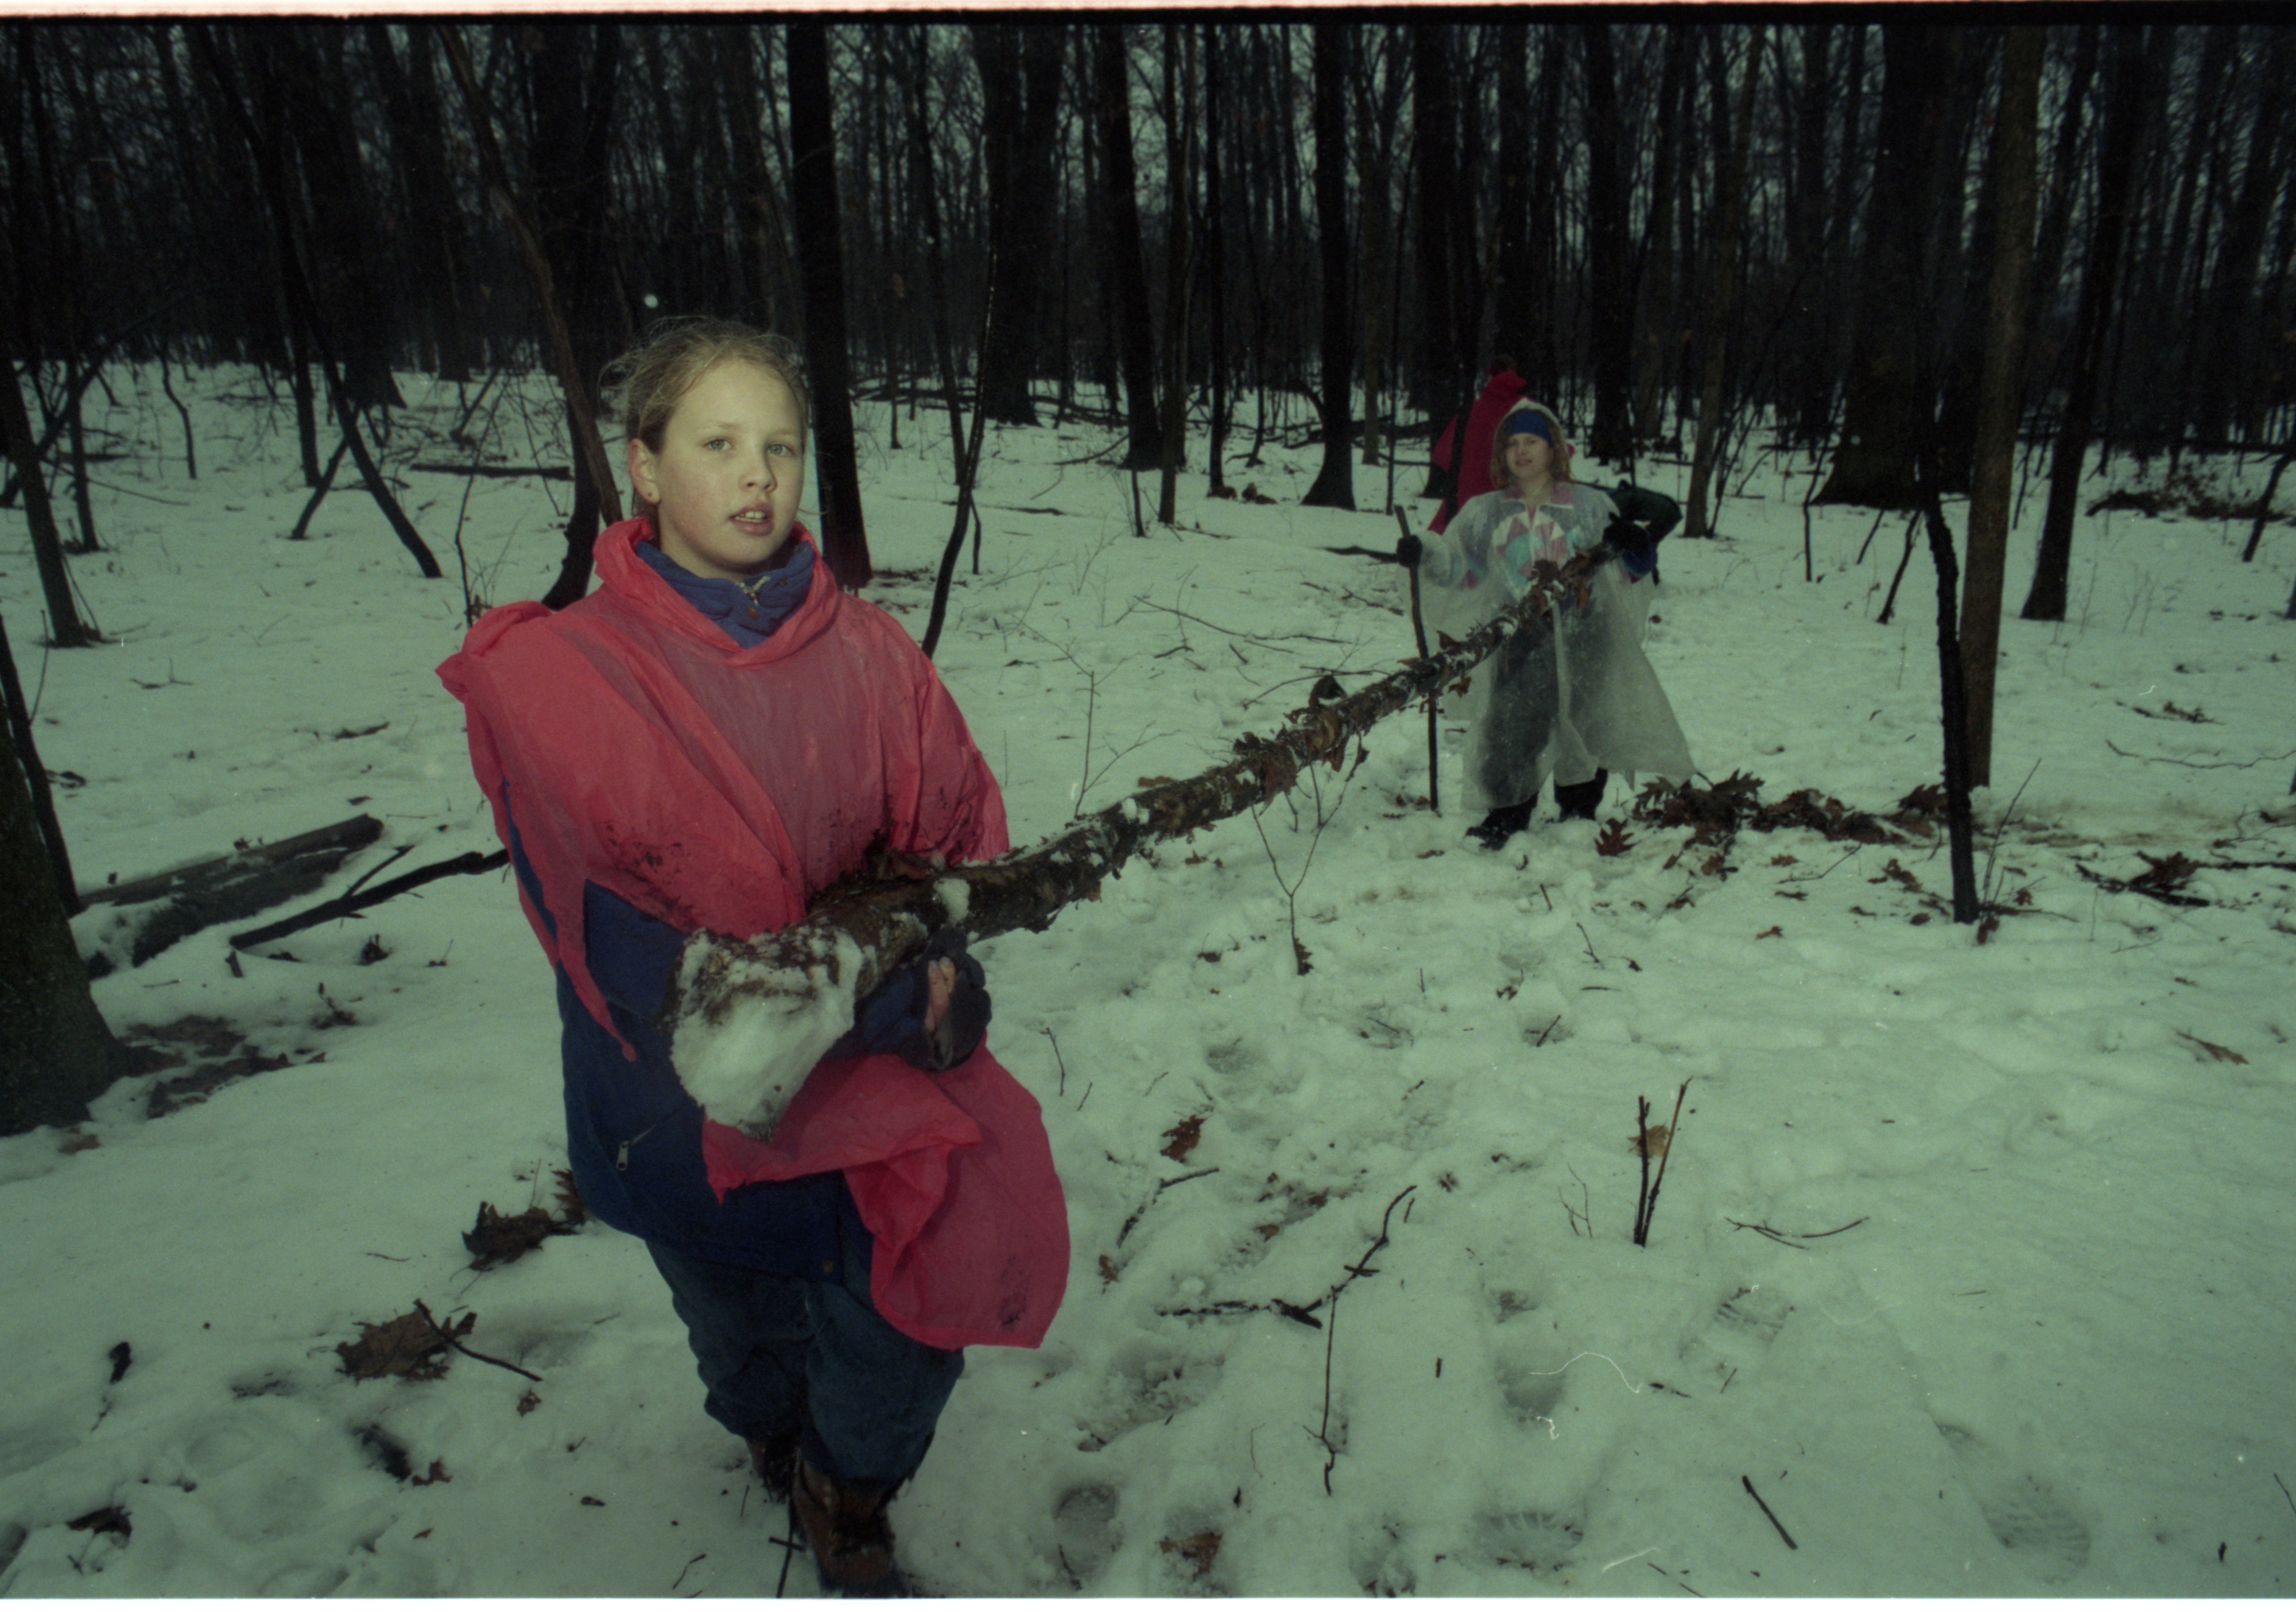 Eberwhite School Students Haul Firewood In Winter Survival Skills Outing, January 1997 image